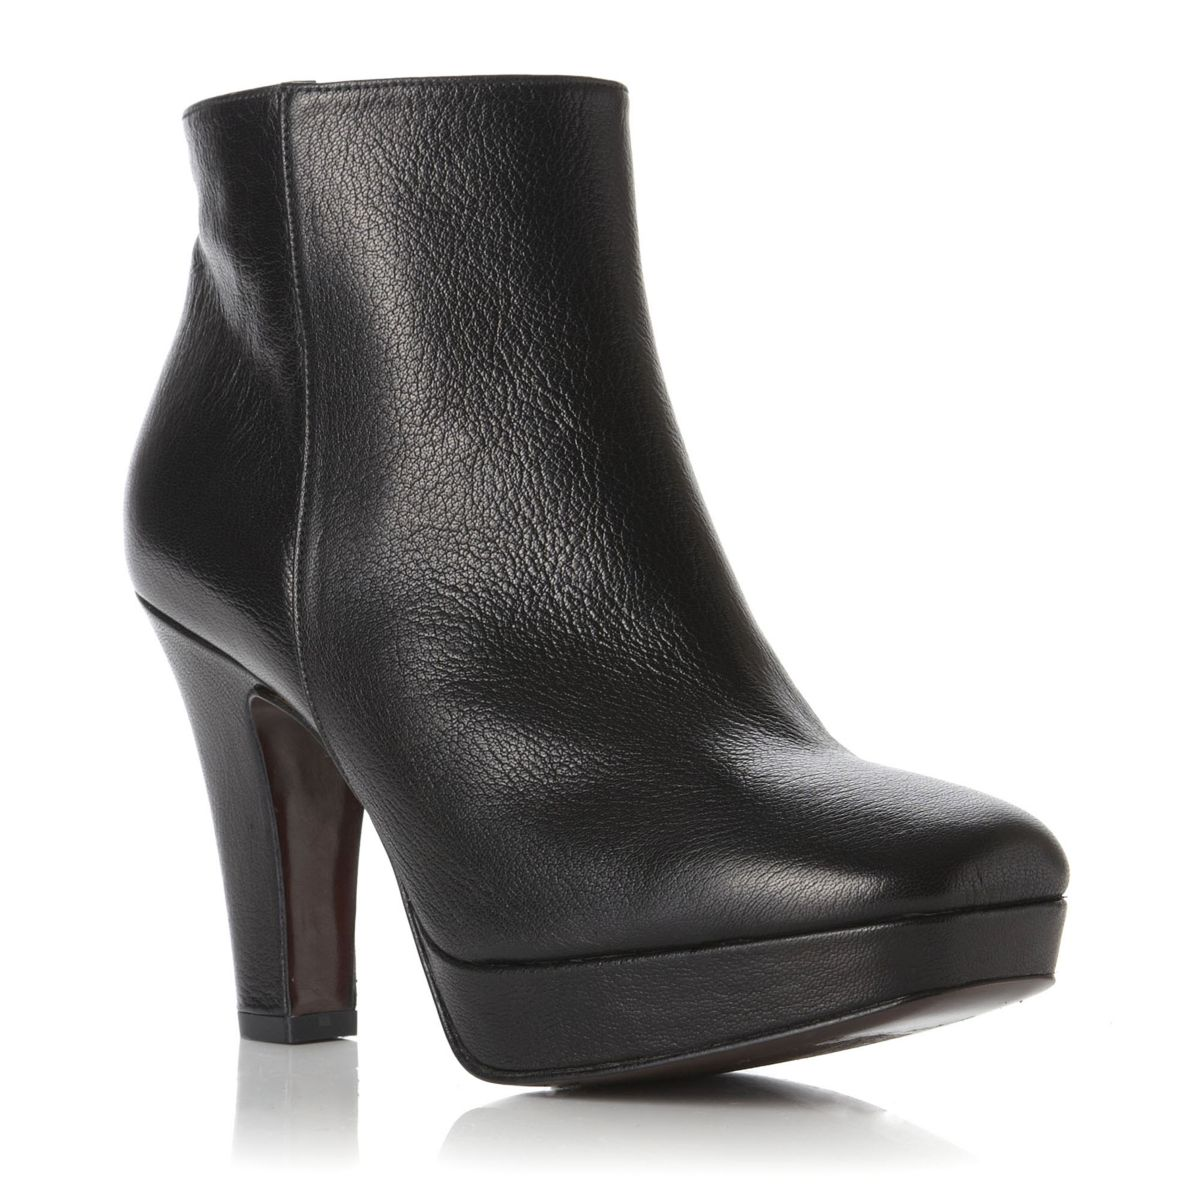 pied a terre snyders black leather high heel womens